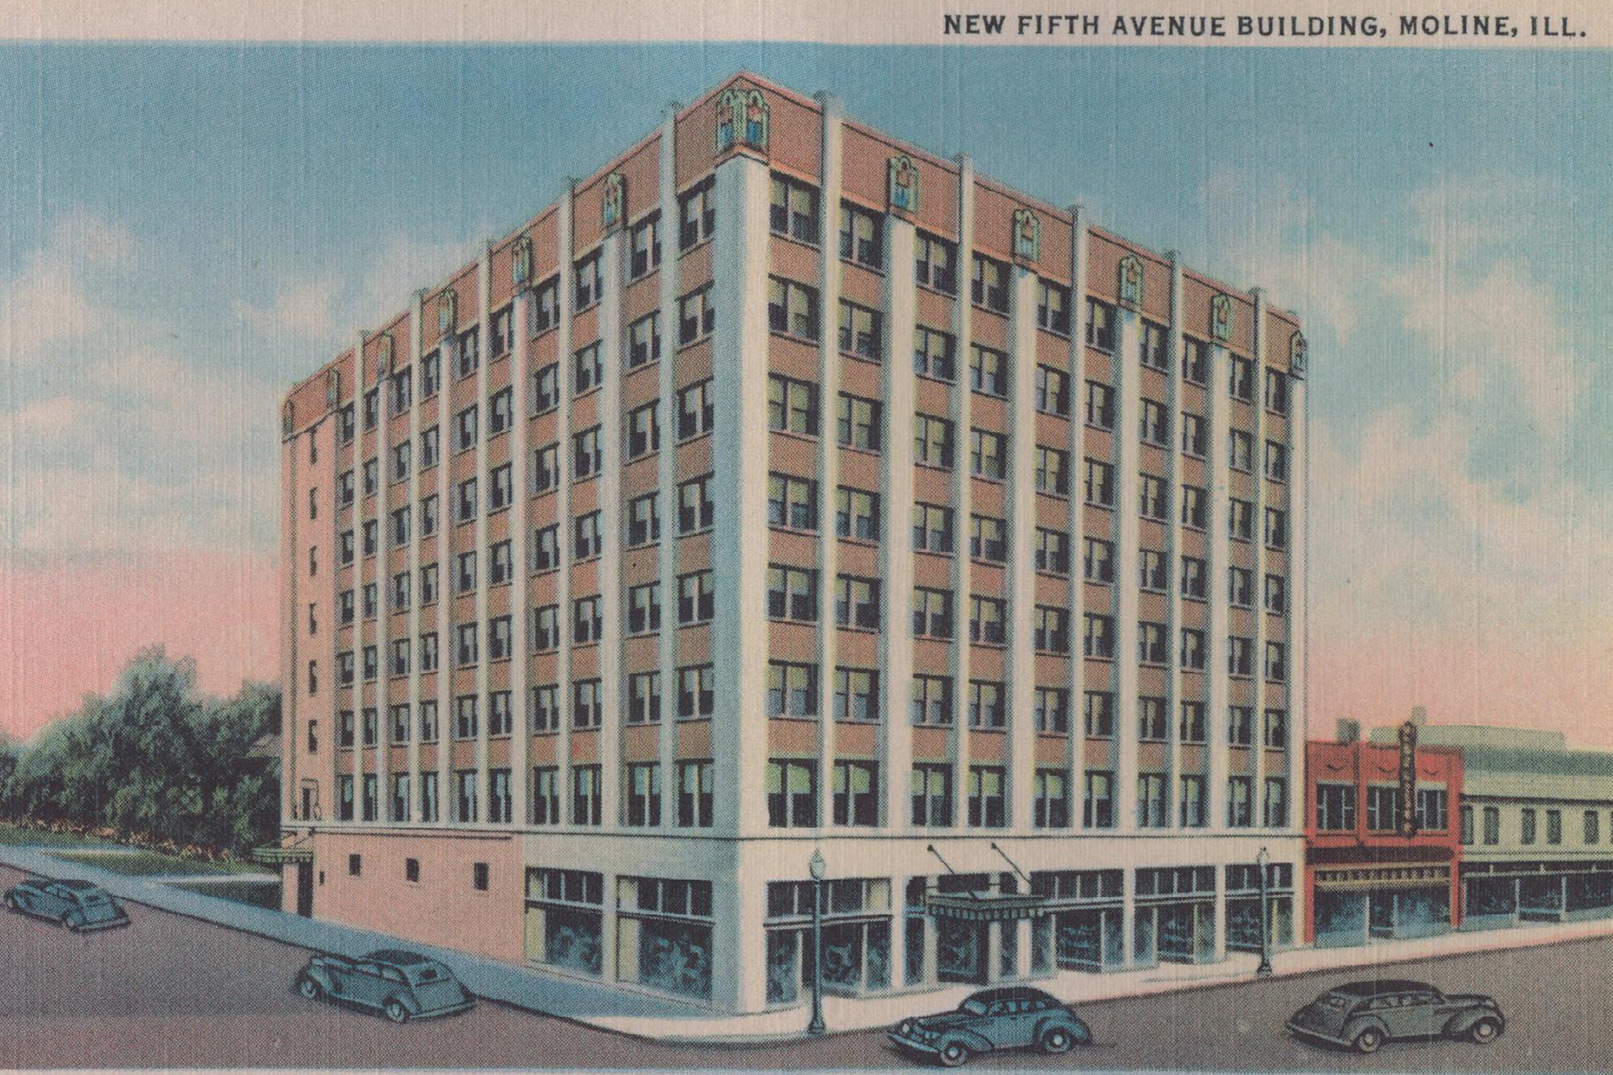 Fifth Avenue Building Historical rendering